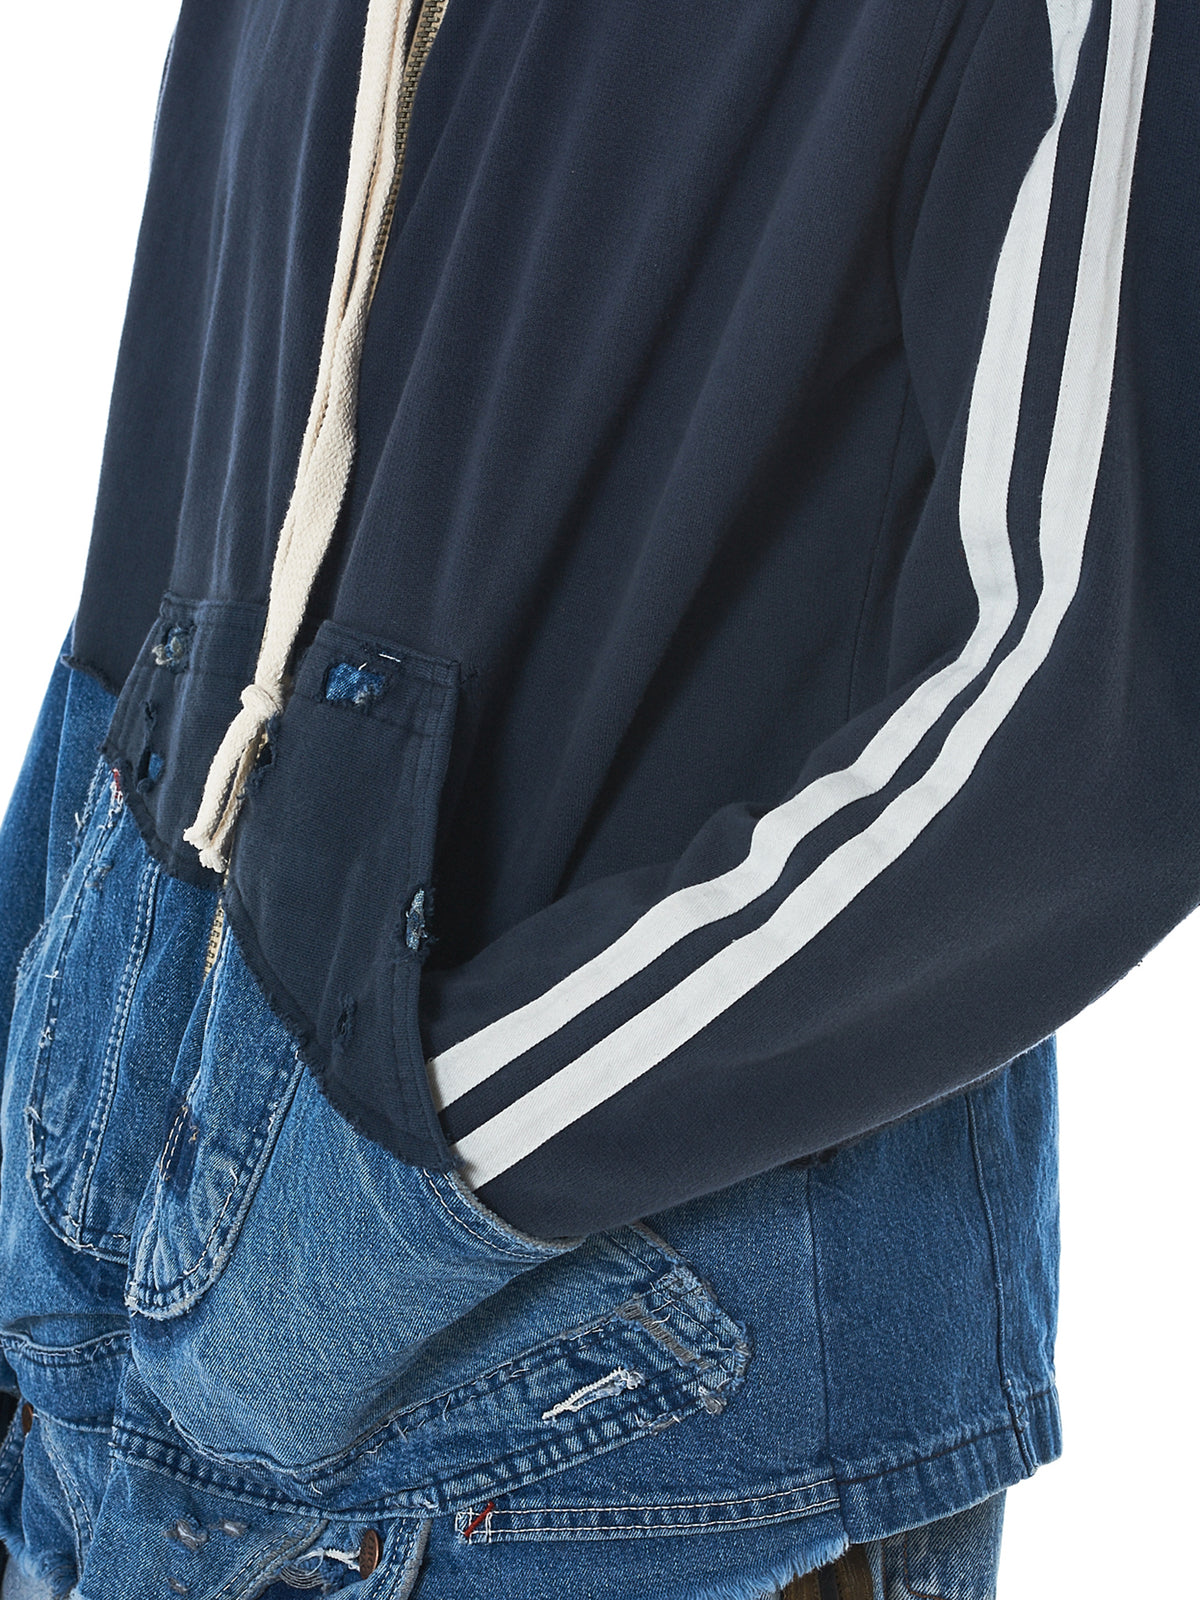 Greg Lauren Denim Jacket -HLorenzo Detail 2